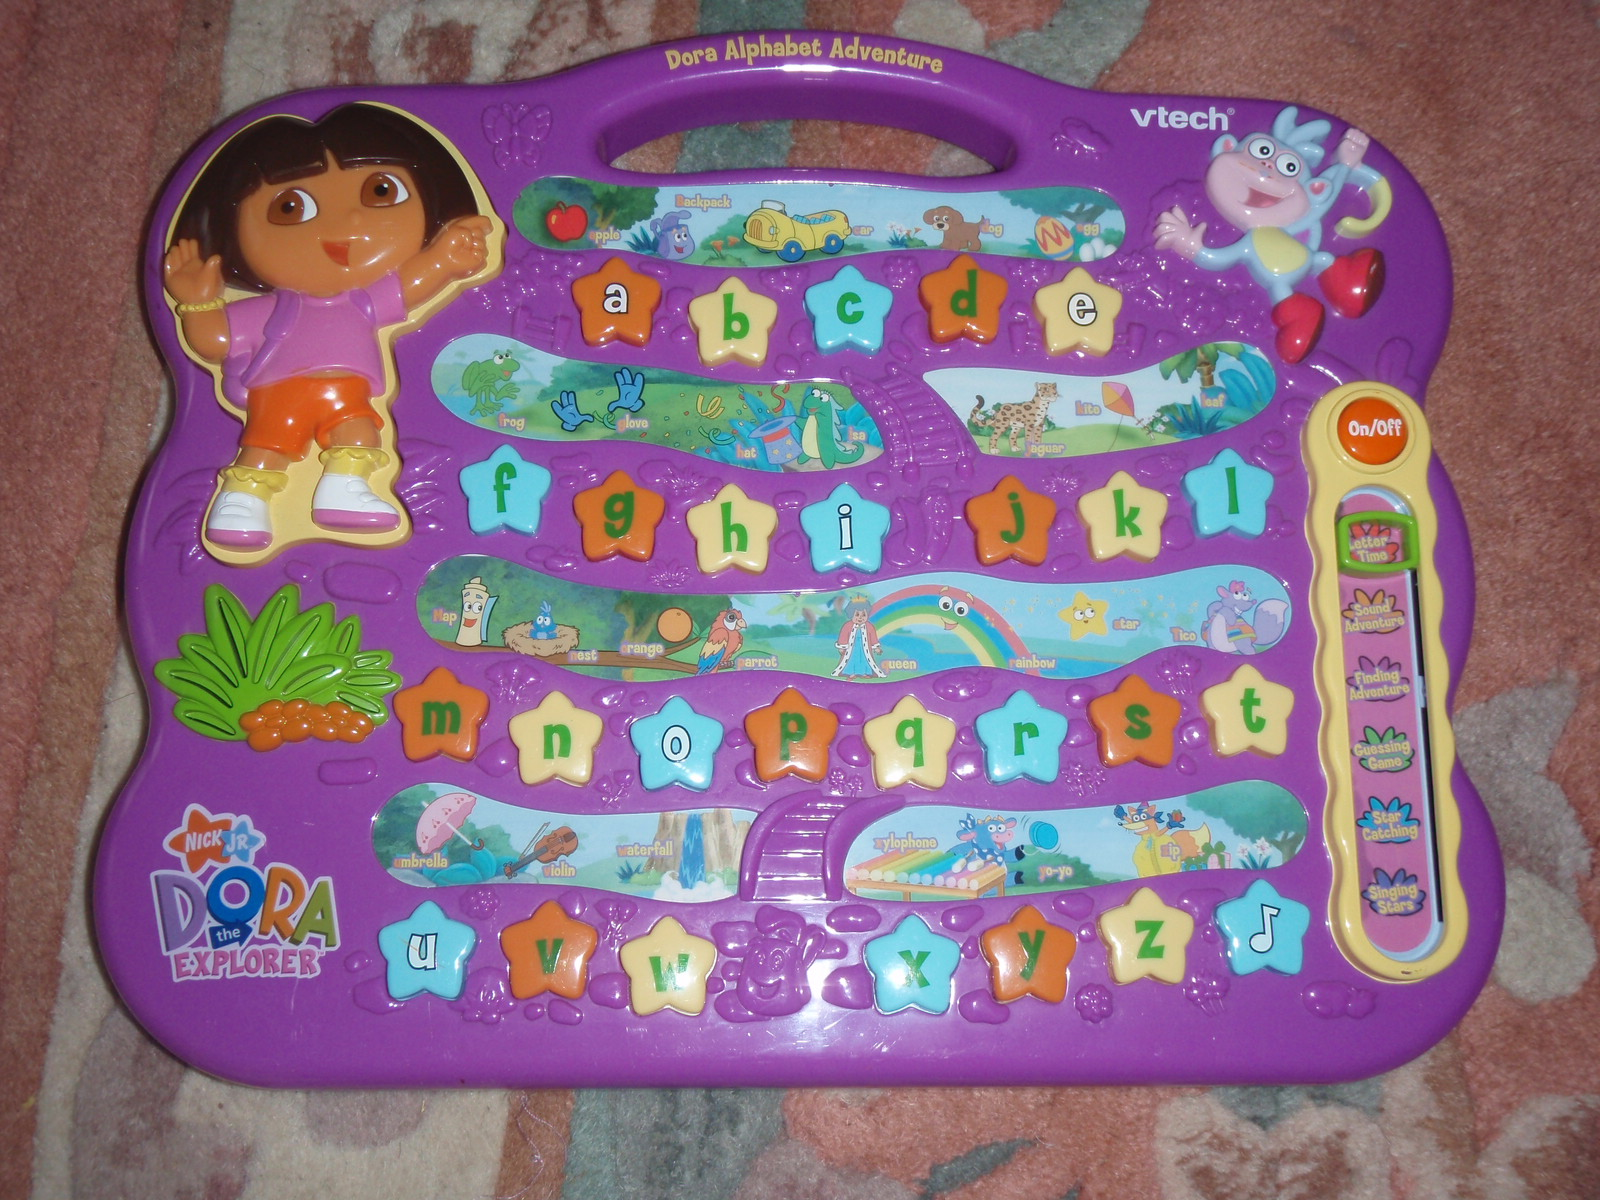 My Baby World Dora Alphabet Adventure By Vtech